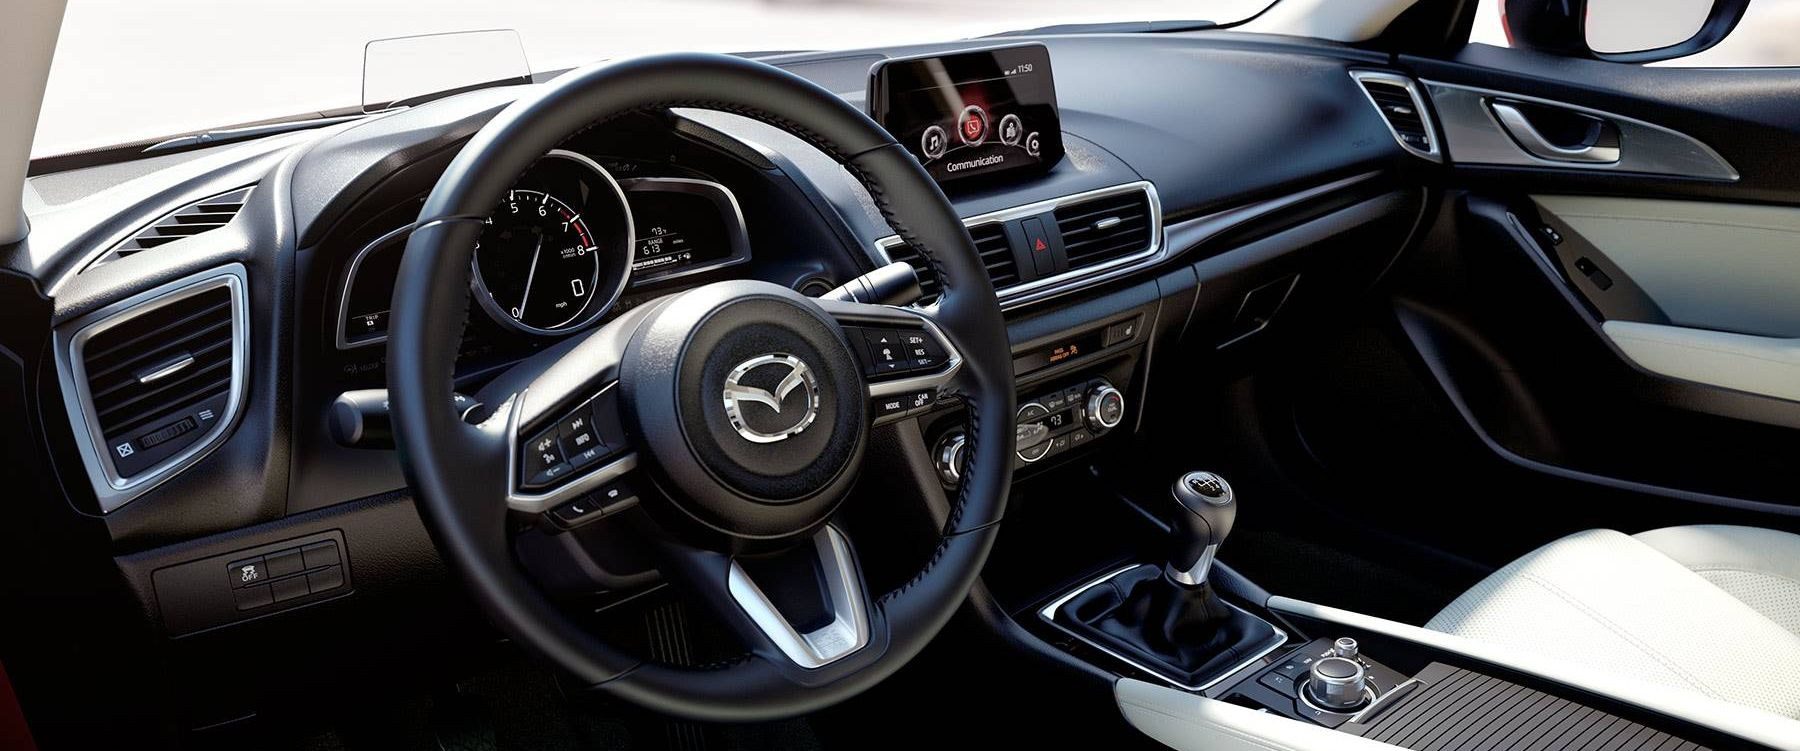 Technology in the 2018 Mazda3